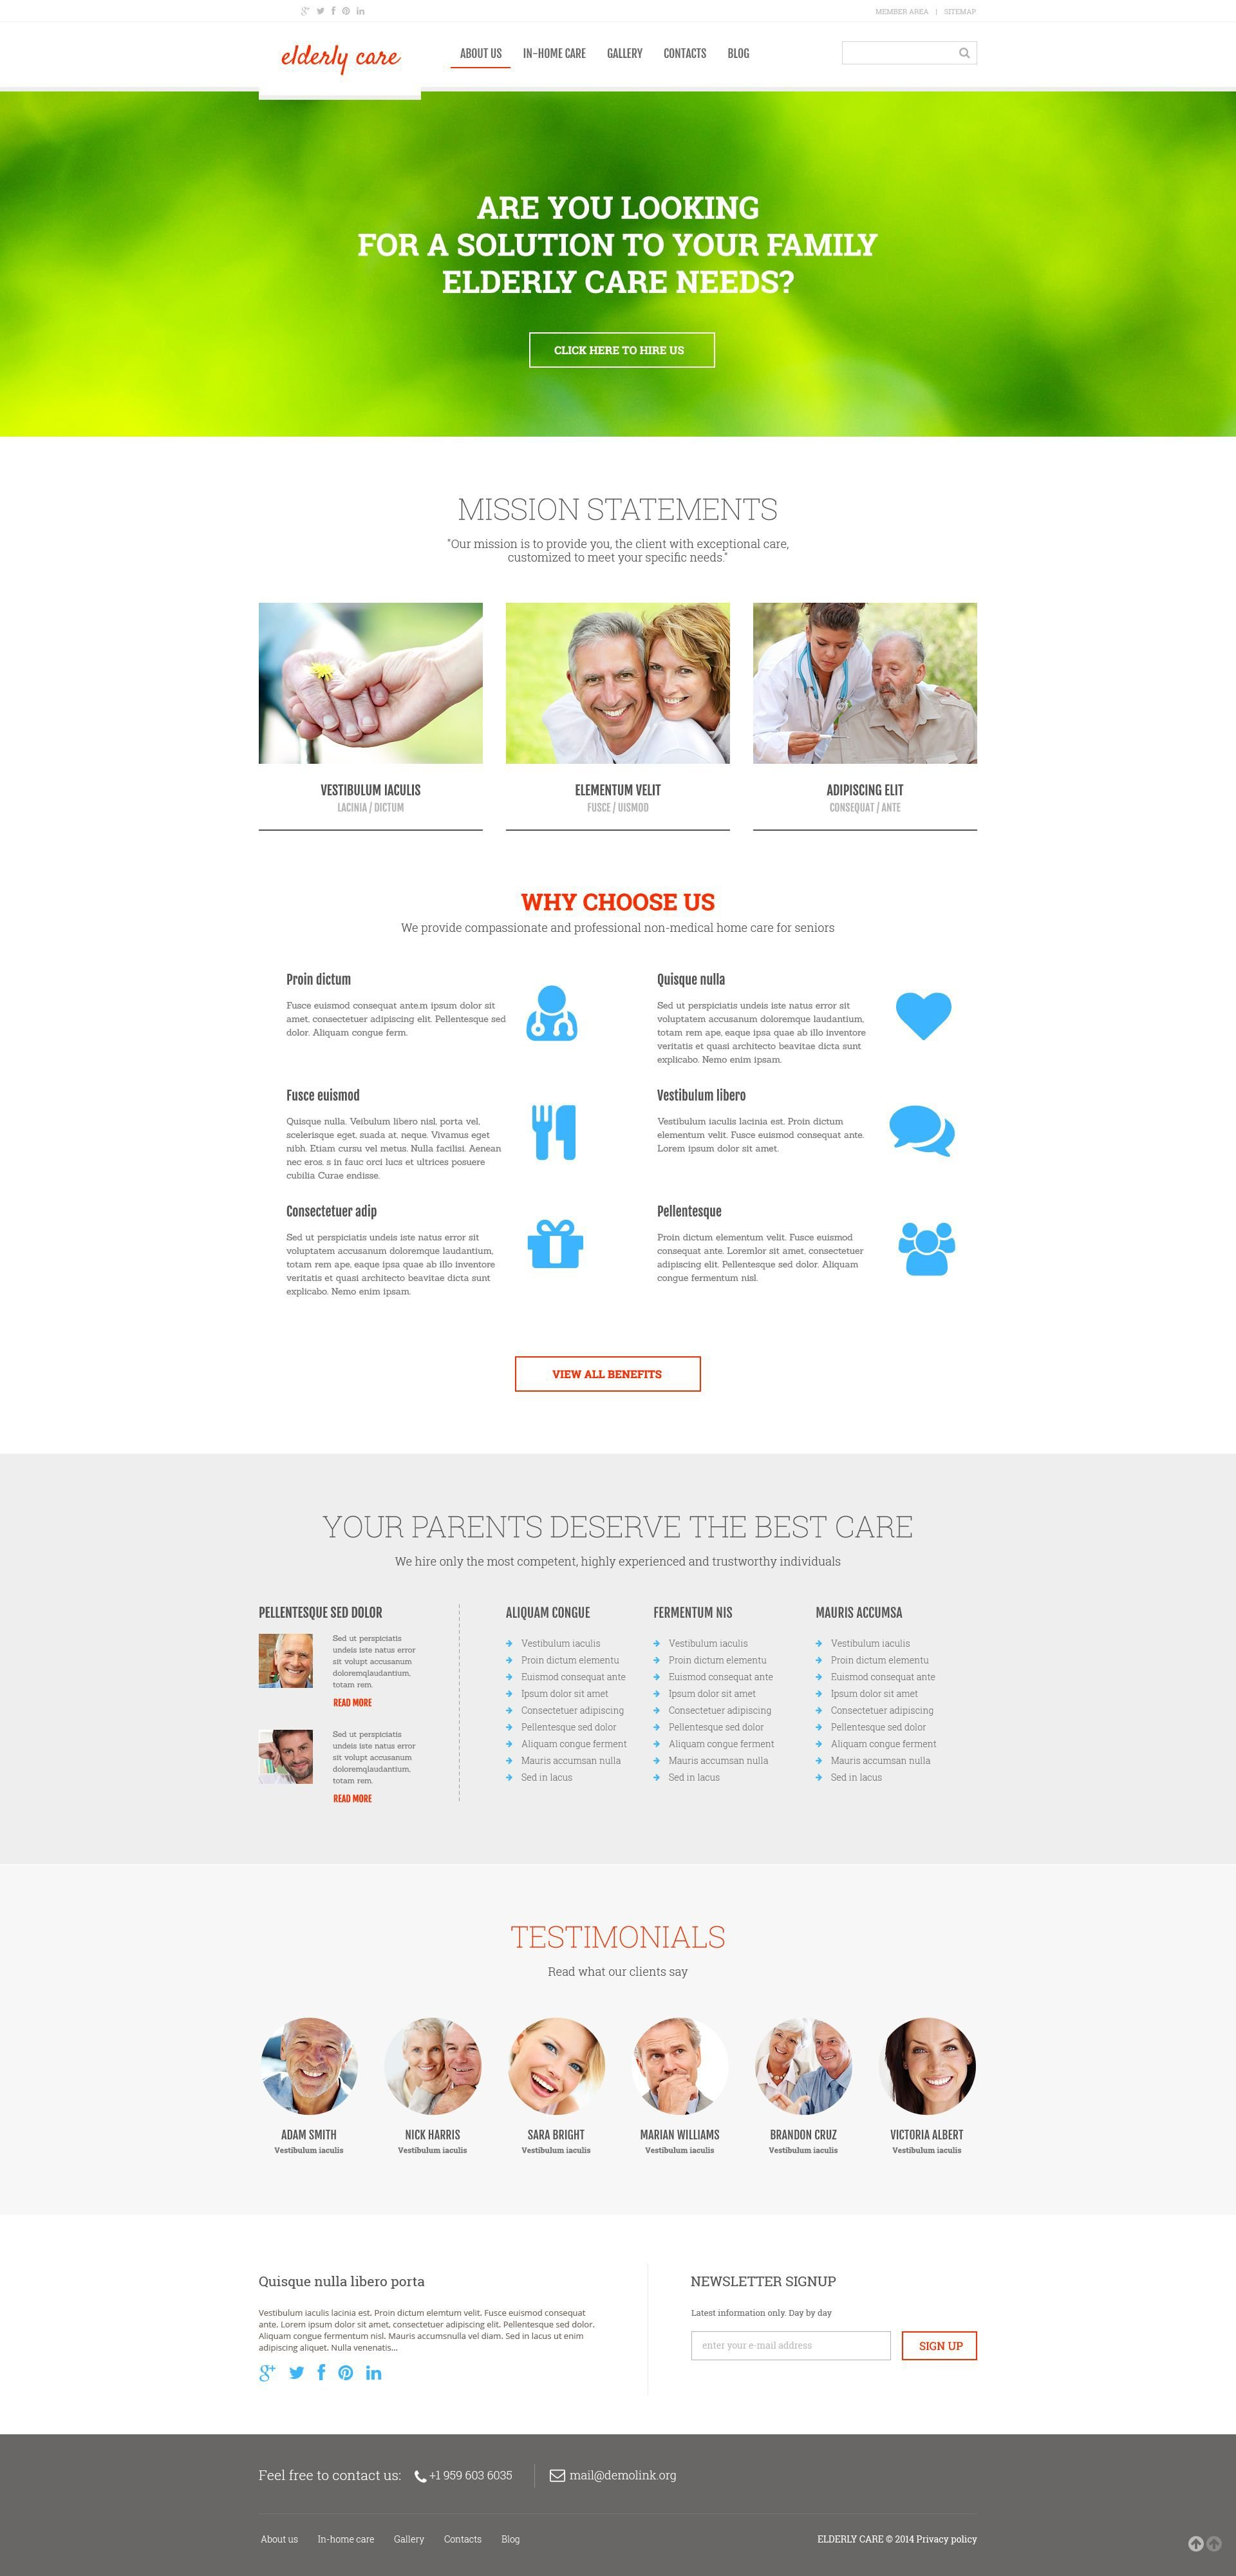 The Elderly Care WordPress Design 52970, one of the best WordPress themes of its kind (society & culture, most popular), also known as elderly care WordPress template, medical doctor WordPress template, services WordPress template, client WordPress template, testimonials WordPress template, body WordPress template, help WordPress template, inspection WordPress template, equipment WordPress template, patients WordPress template, medicine WordPress template, healthcare WordPress template, surgery clinic WordPress template, science WordPress template, laboratory WordPress template, drugs WordPress template, pills WordPress template, nurse WordPress template, cure WordPress template, vaccine WordPress template, treatment WordPress template, oncology WordPress template, prescription WordPress template, pharmaceutical WordPress template, disease WordPress template, illness WordPress template, vitamin WordPress template, ta and related with elderly care, medical doctor, services, client, testimonials, body, help, inspection, equipment, patients, medicine, healthcare, surgery clinic, science, laboratory, drugs, pills, nurse, cure, vaccine, treatment, oncology, prescription, pharmaceutical, disease, illness, vitamin, ta, etc.